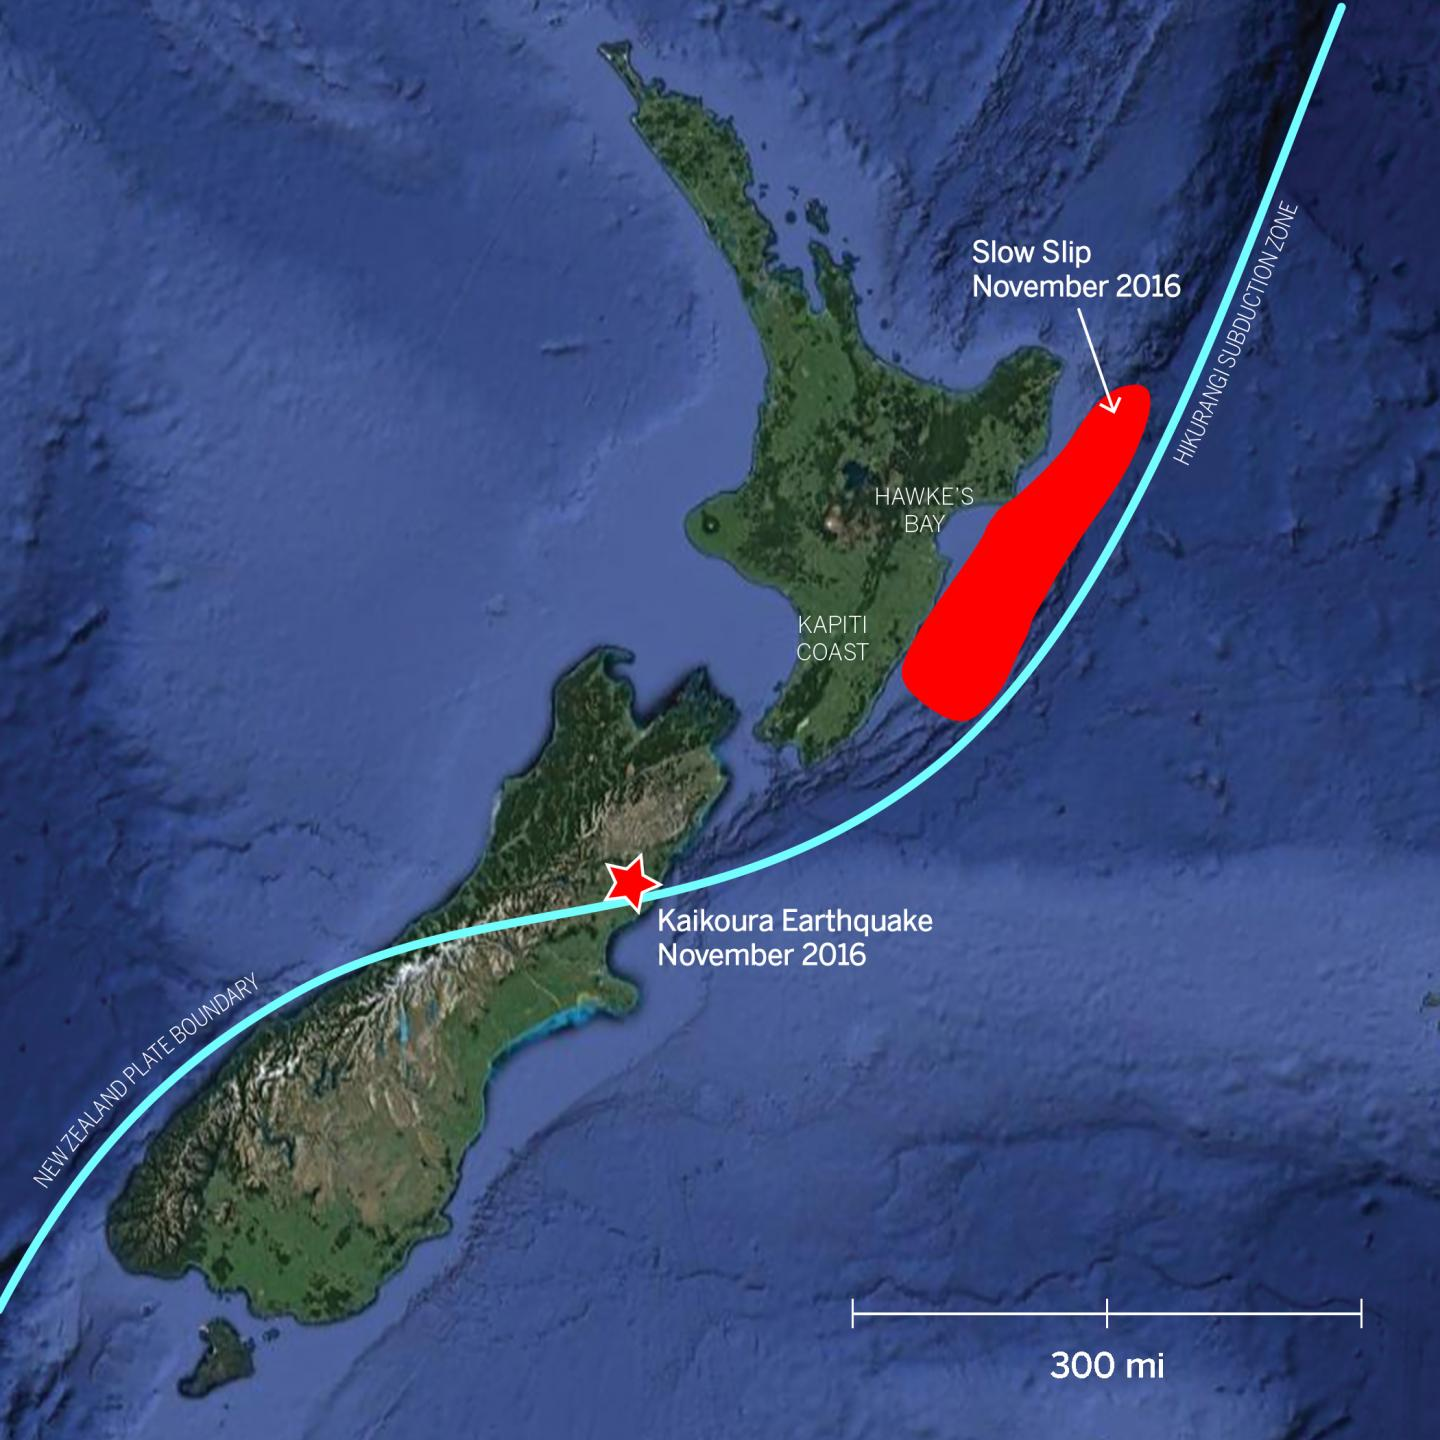 Earthquake and Slow Slip Map